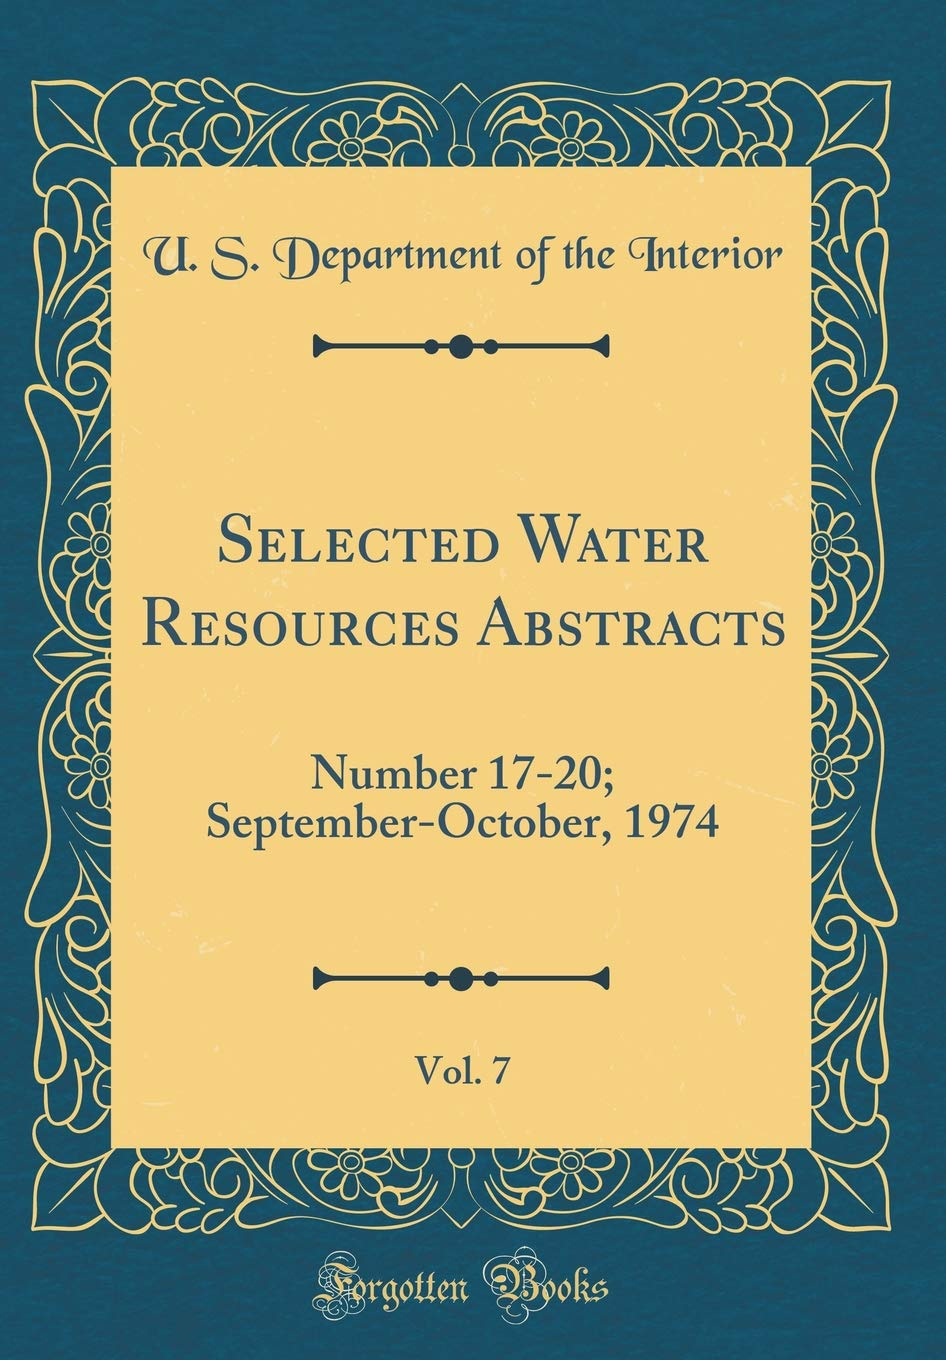 Download Selected Water Resources Abstracts, Vol. 7: Number 17-20; September-October, 1974 (Classic Reprint) pdf epub